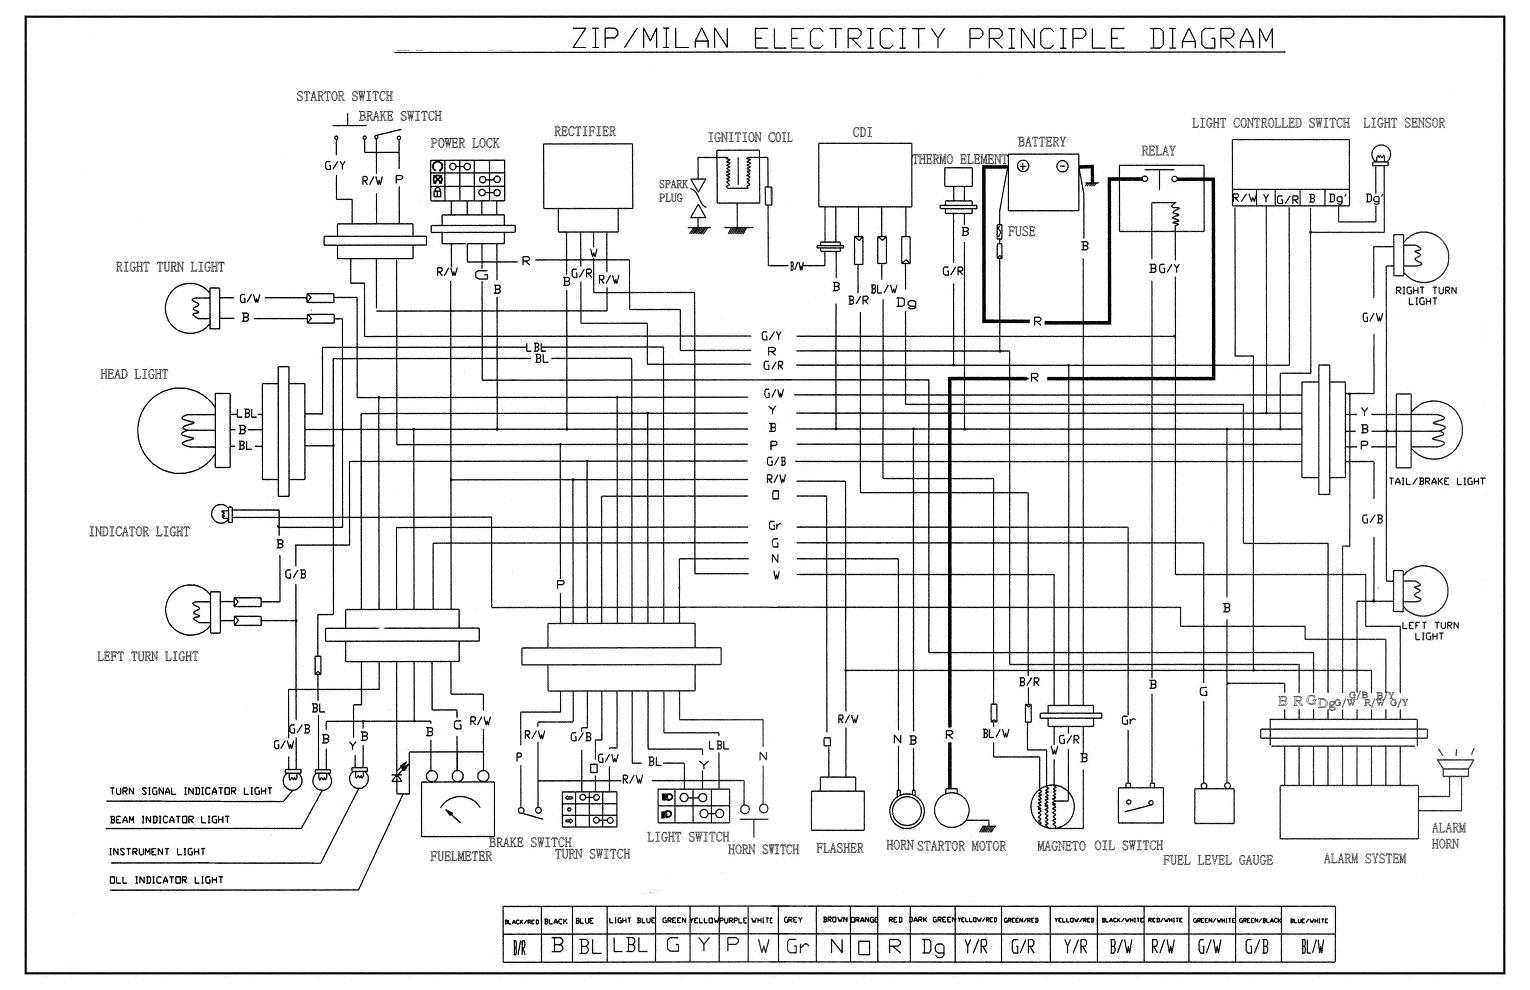 4 wire gm starter wiring diagram gm electric choke diagram